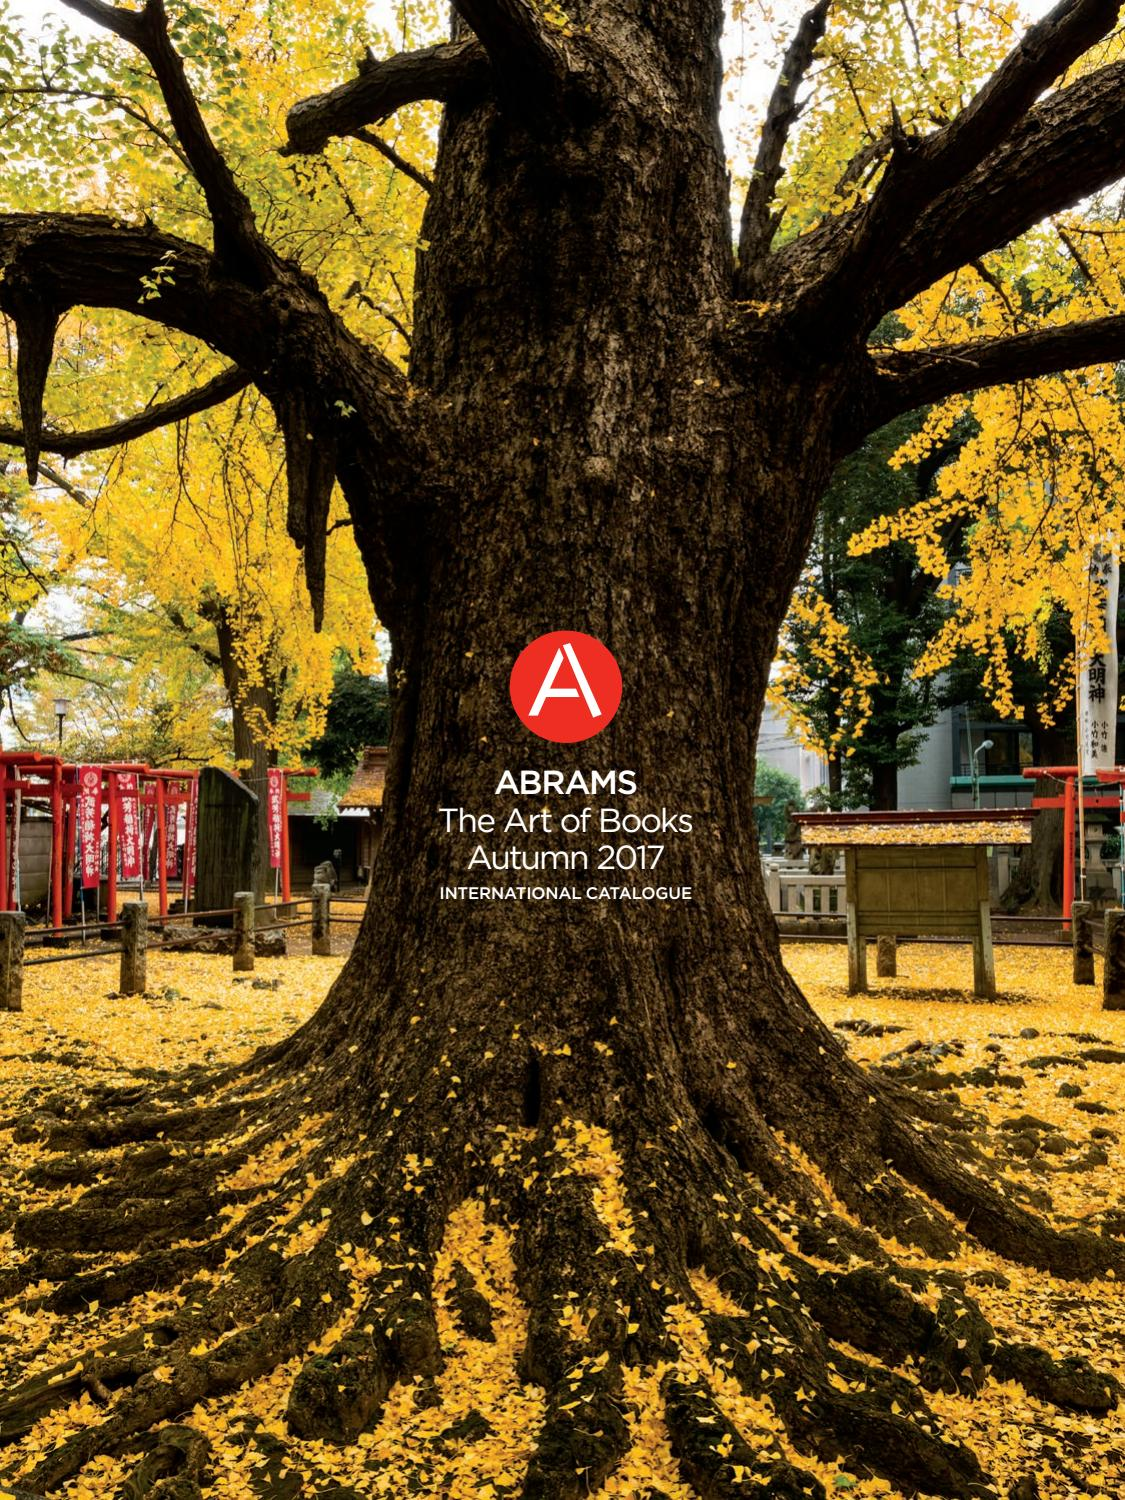 Abrams Autumn 2017 International Catalogue By ABRAMS